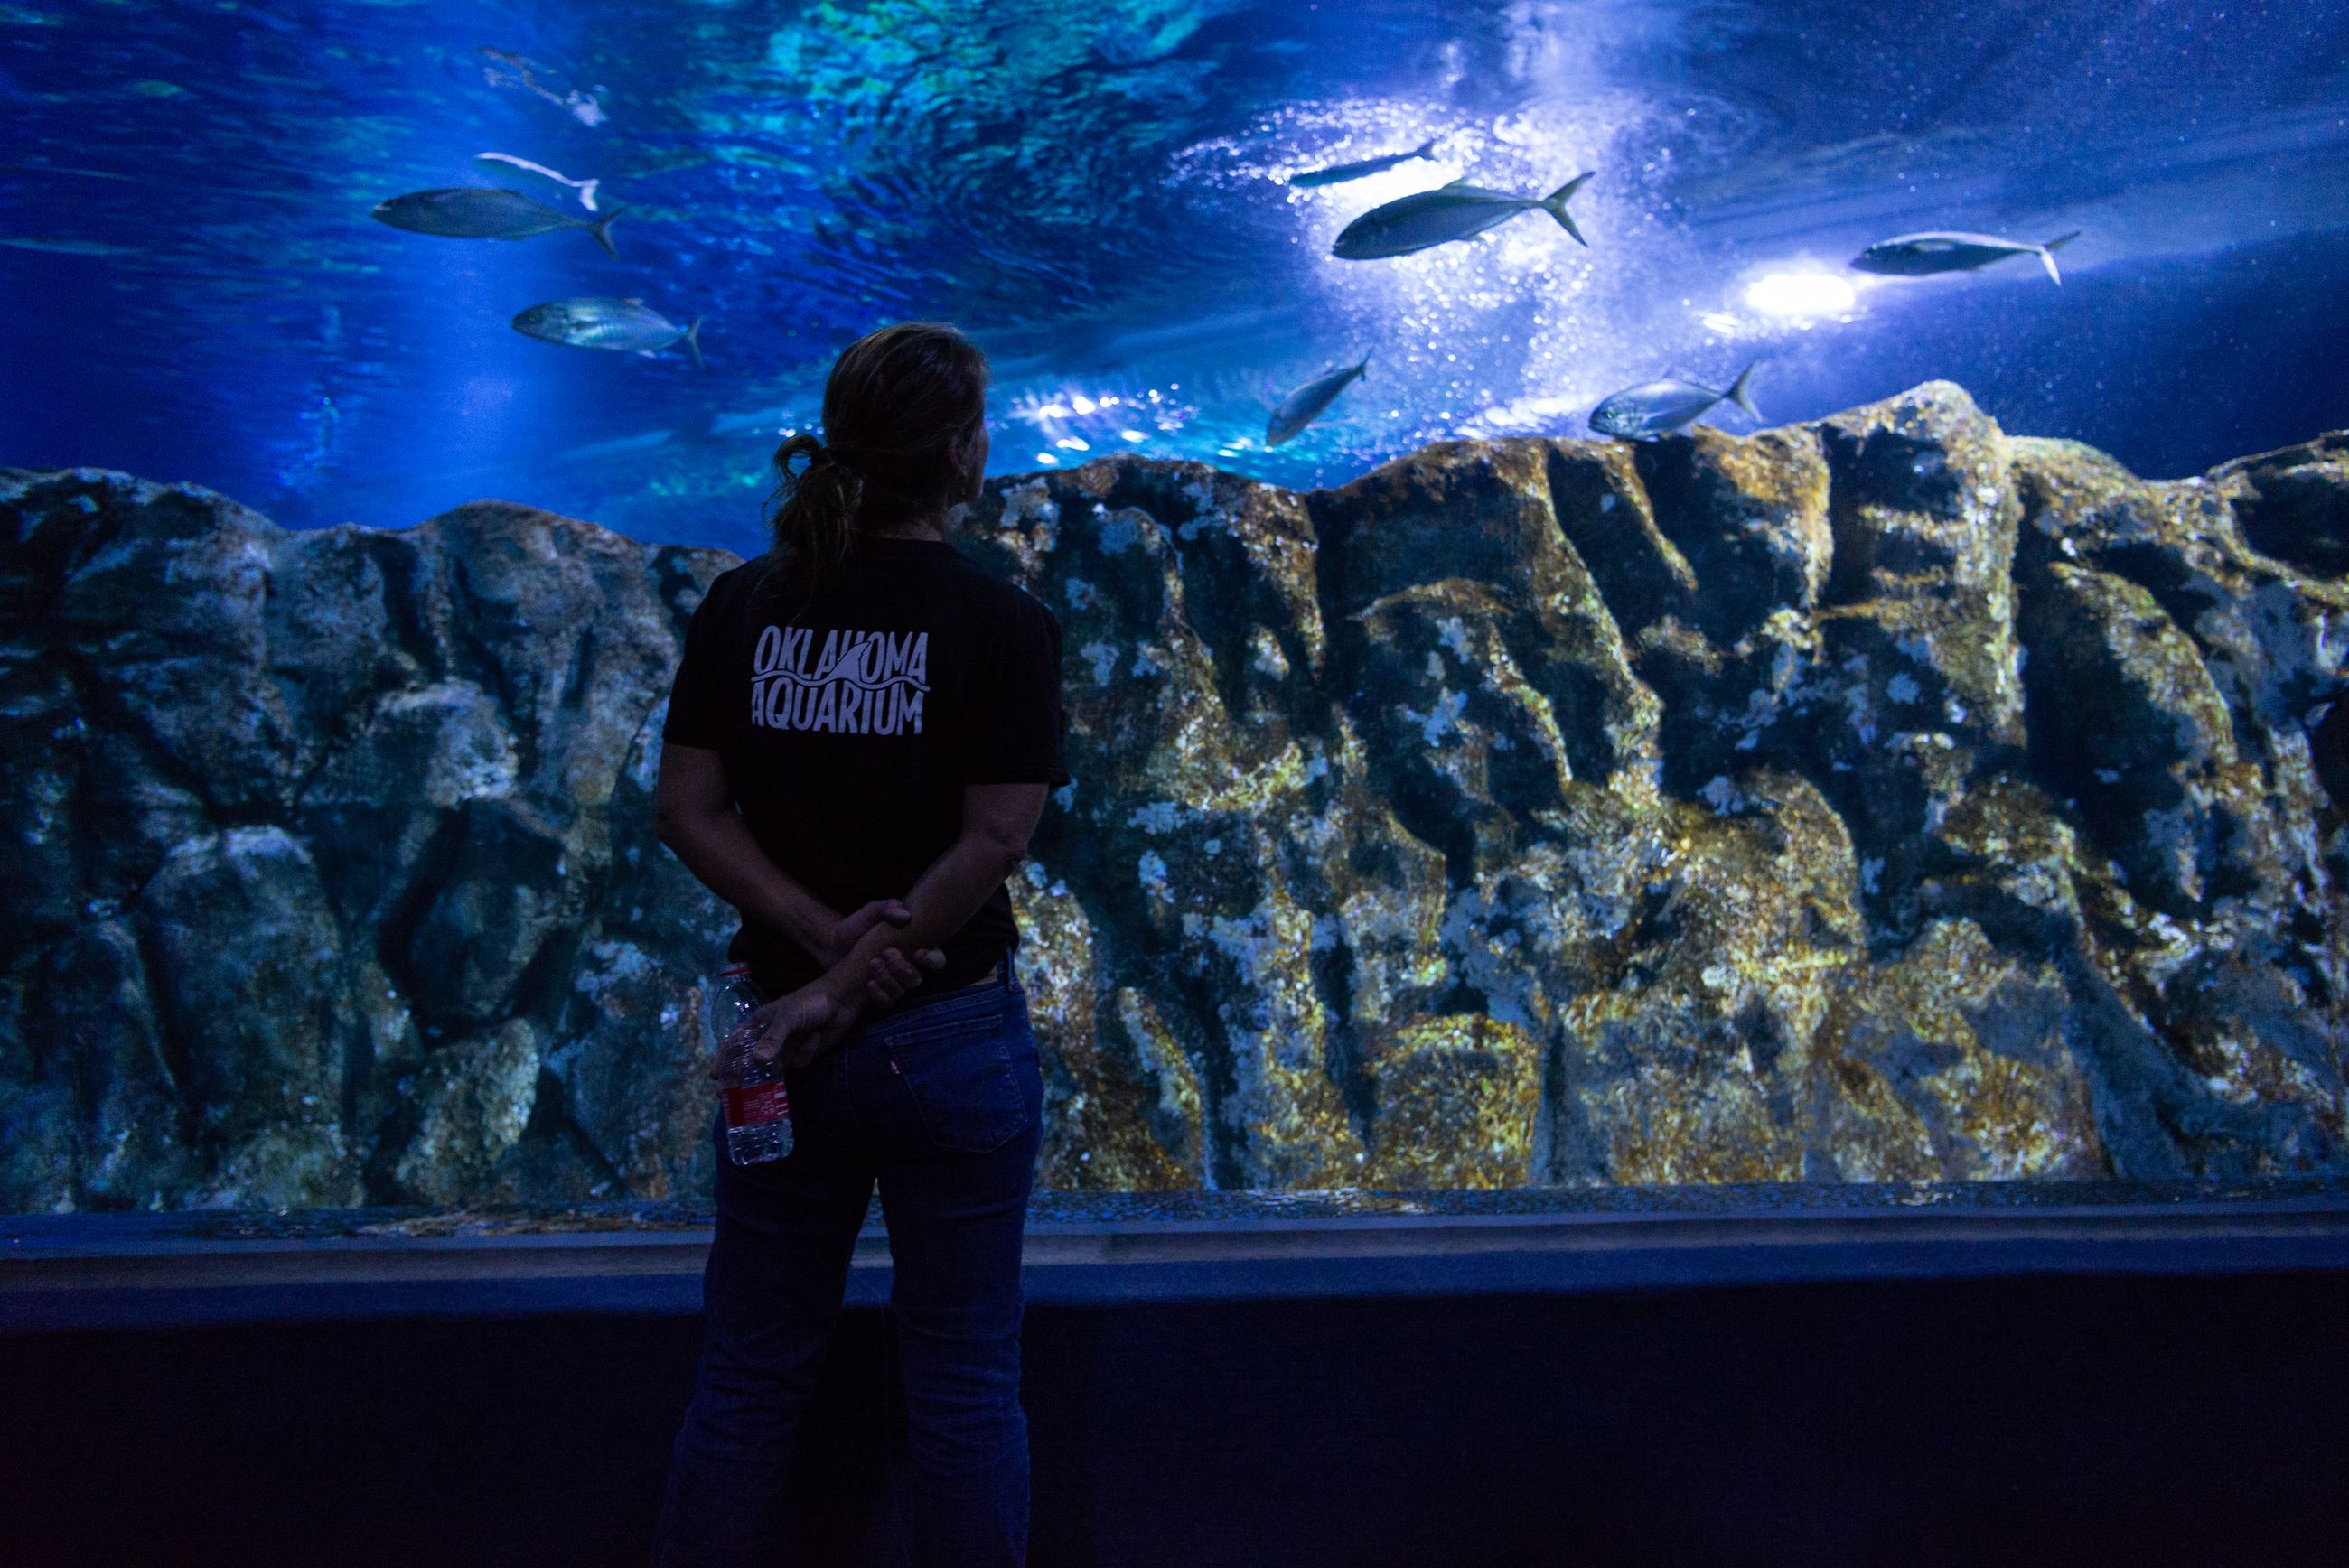 Amy Alexopoulos, Lead Aquarist of Marine Fishes at the Oklahoma Aquarium, looks at the Mediterranean